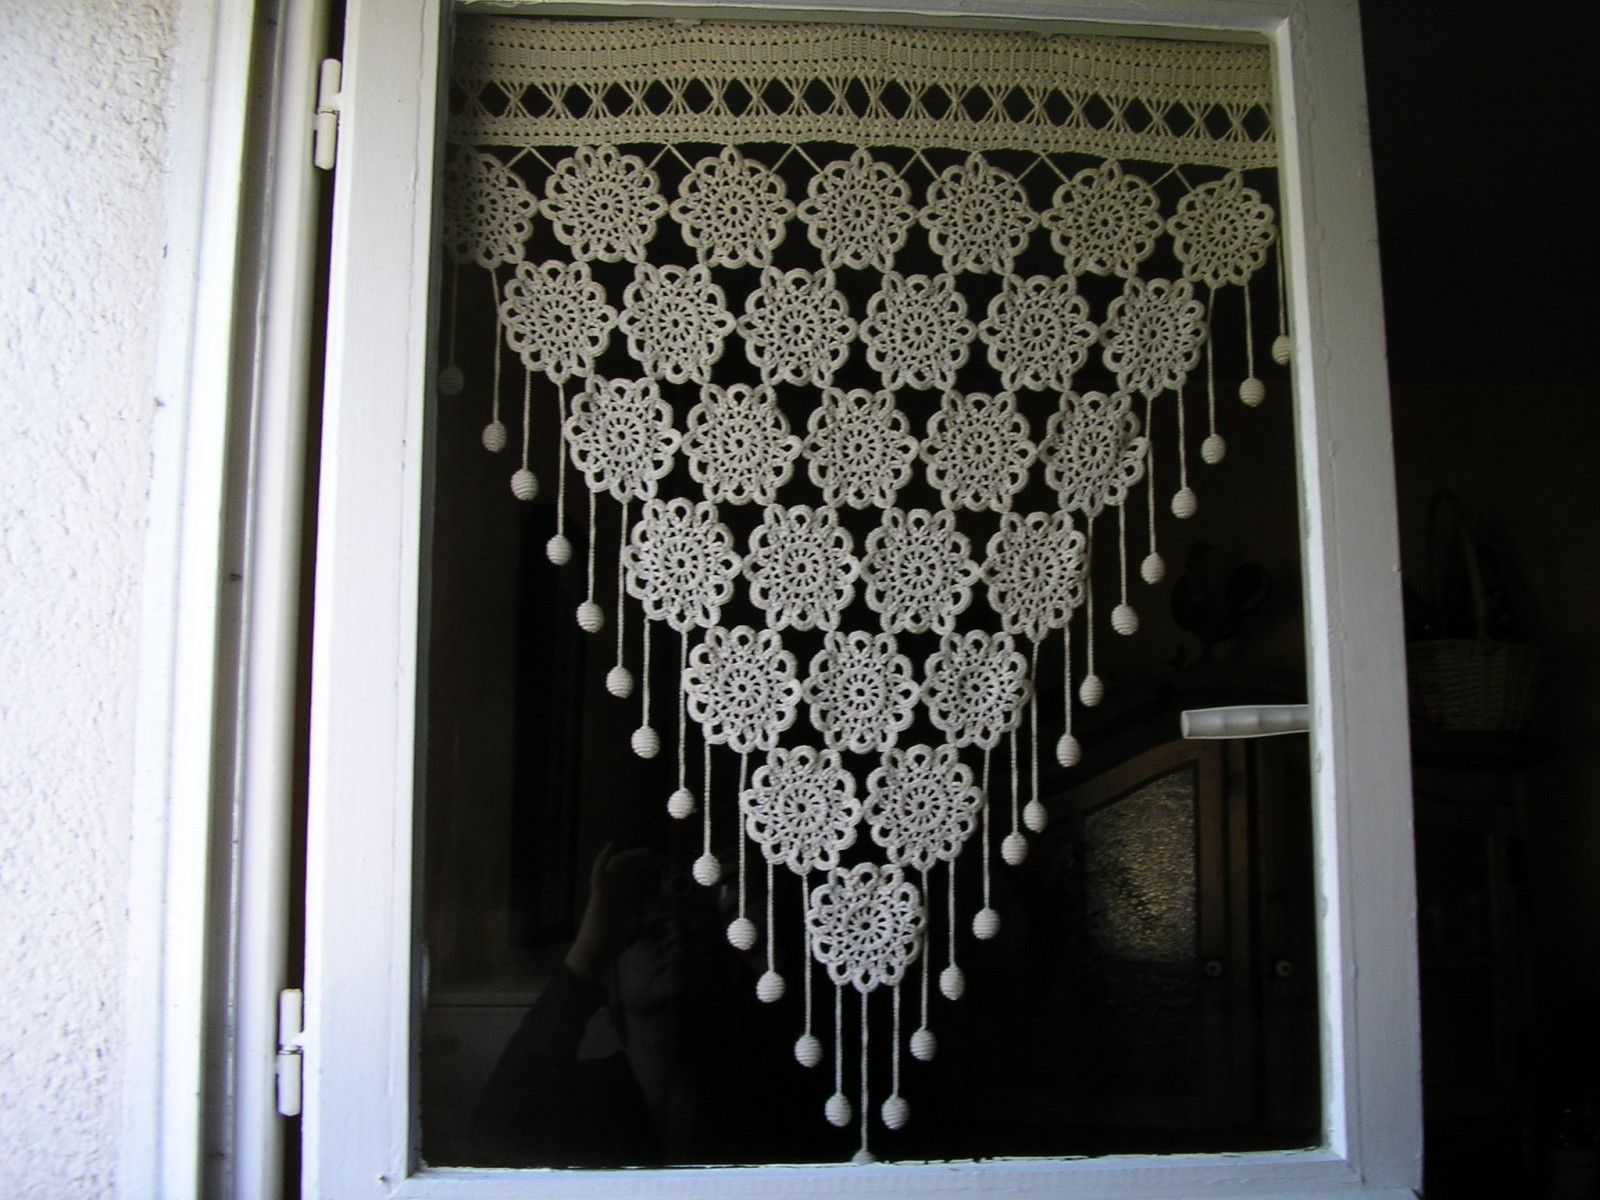 rideau au crochet phildar ref phildar rideaux n 248 d3 322 crochet curtain perde. Black Bedroom Furniture Sets. Home Design Ideas